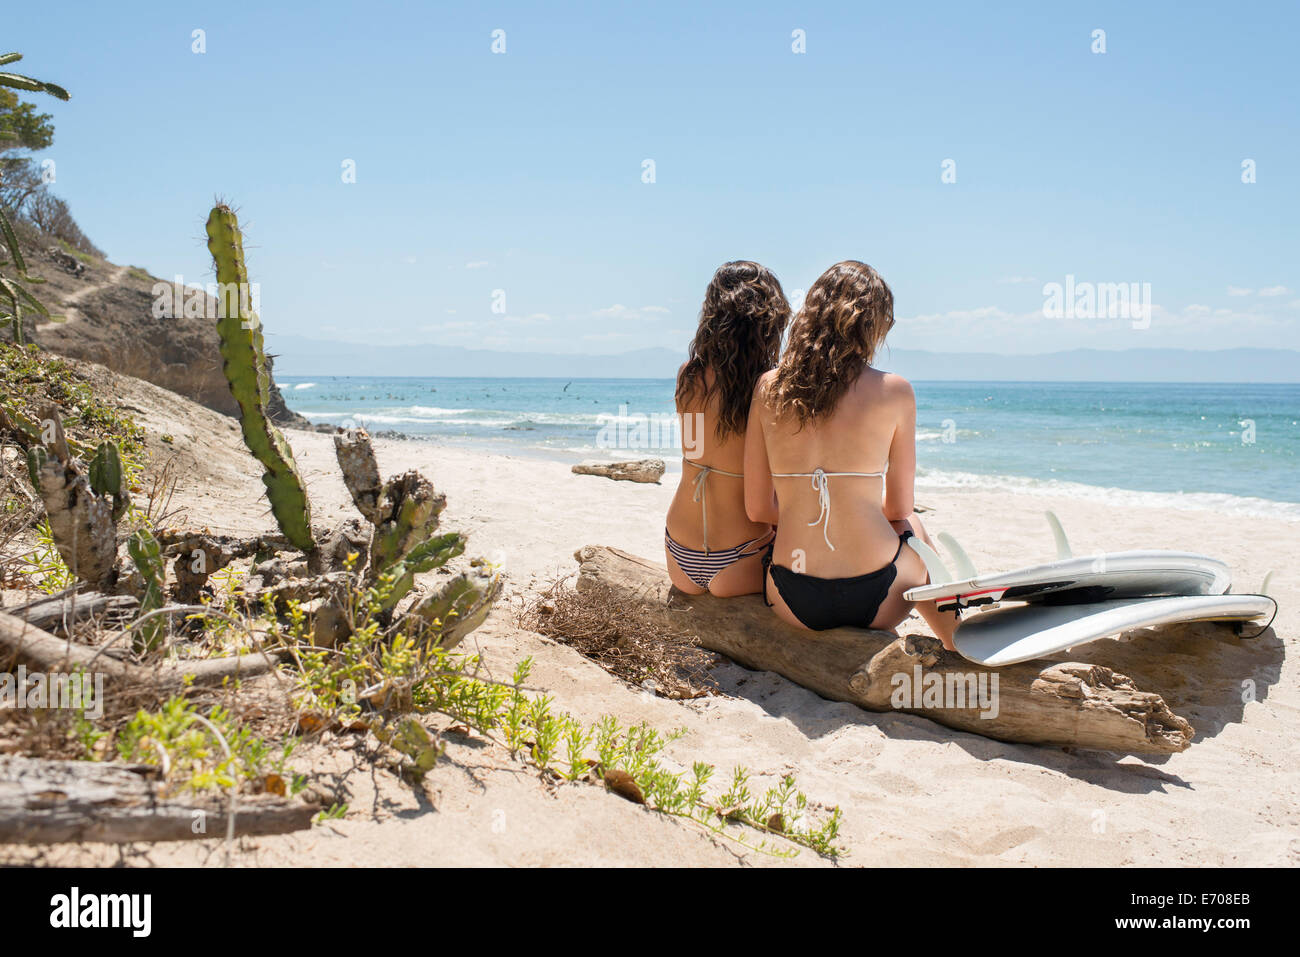 Two young woman sitting on driftwood at beach, surfboard closeby - Stock Image